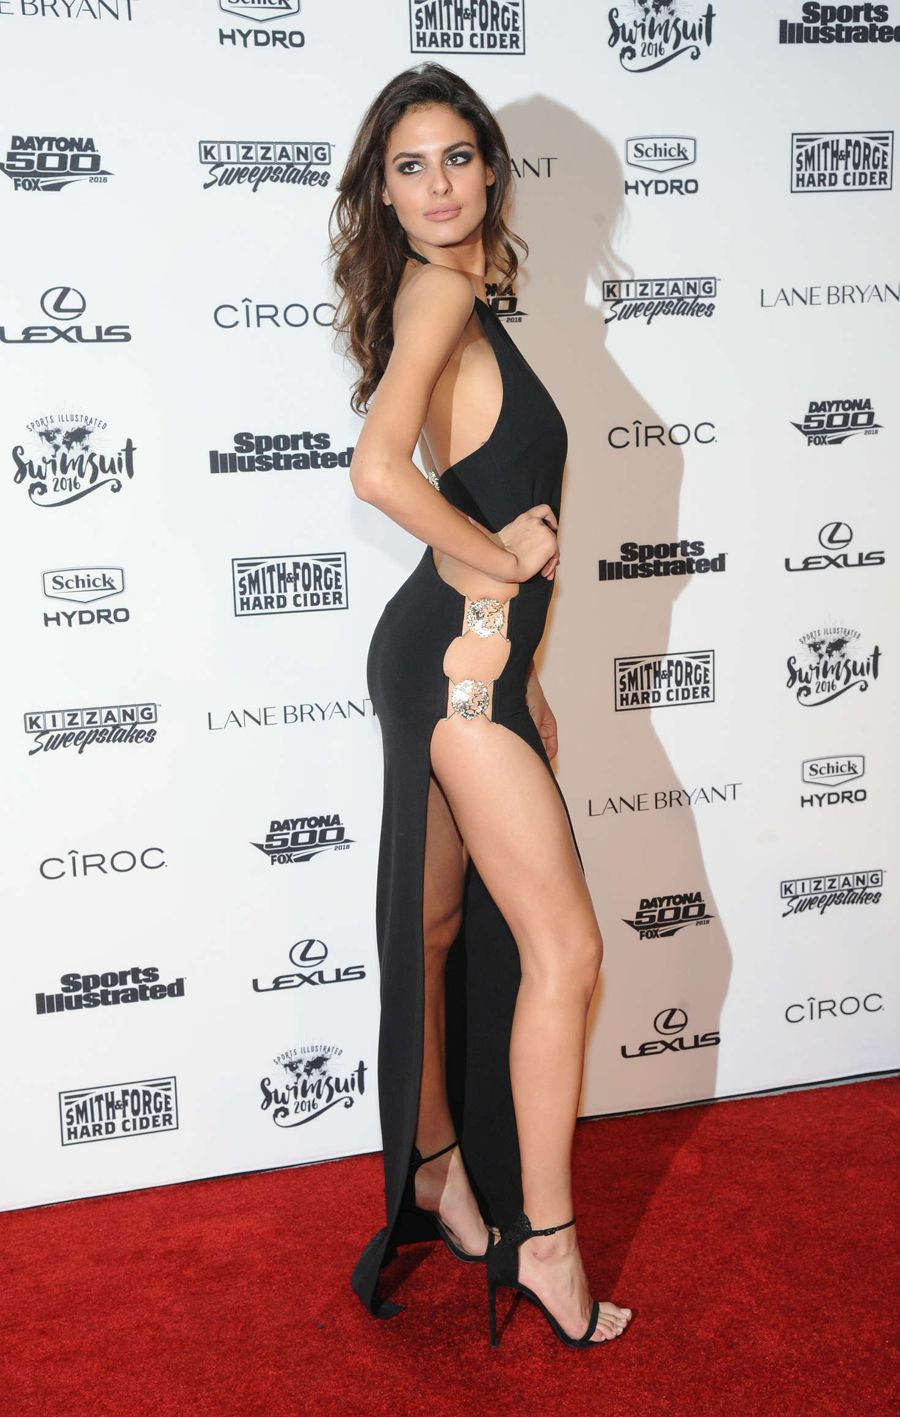 Sports Illustrated - 2016 VIP Red Carpet Event